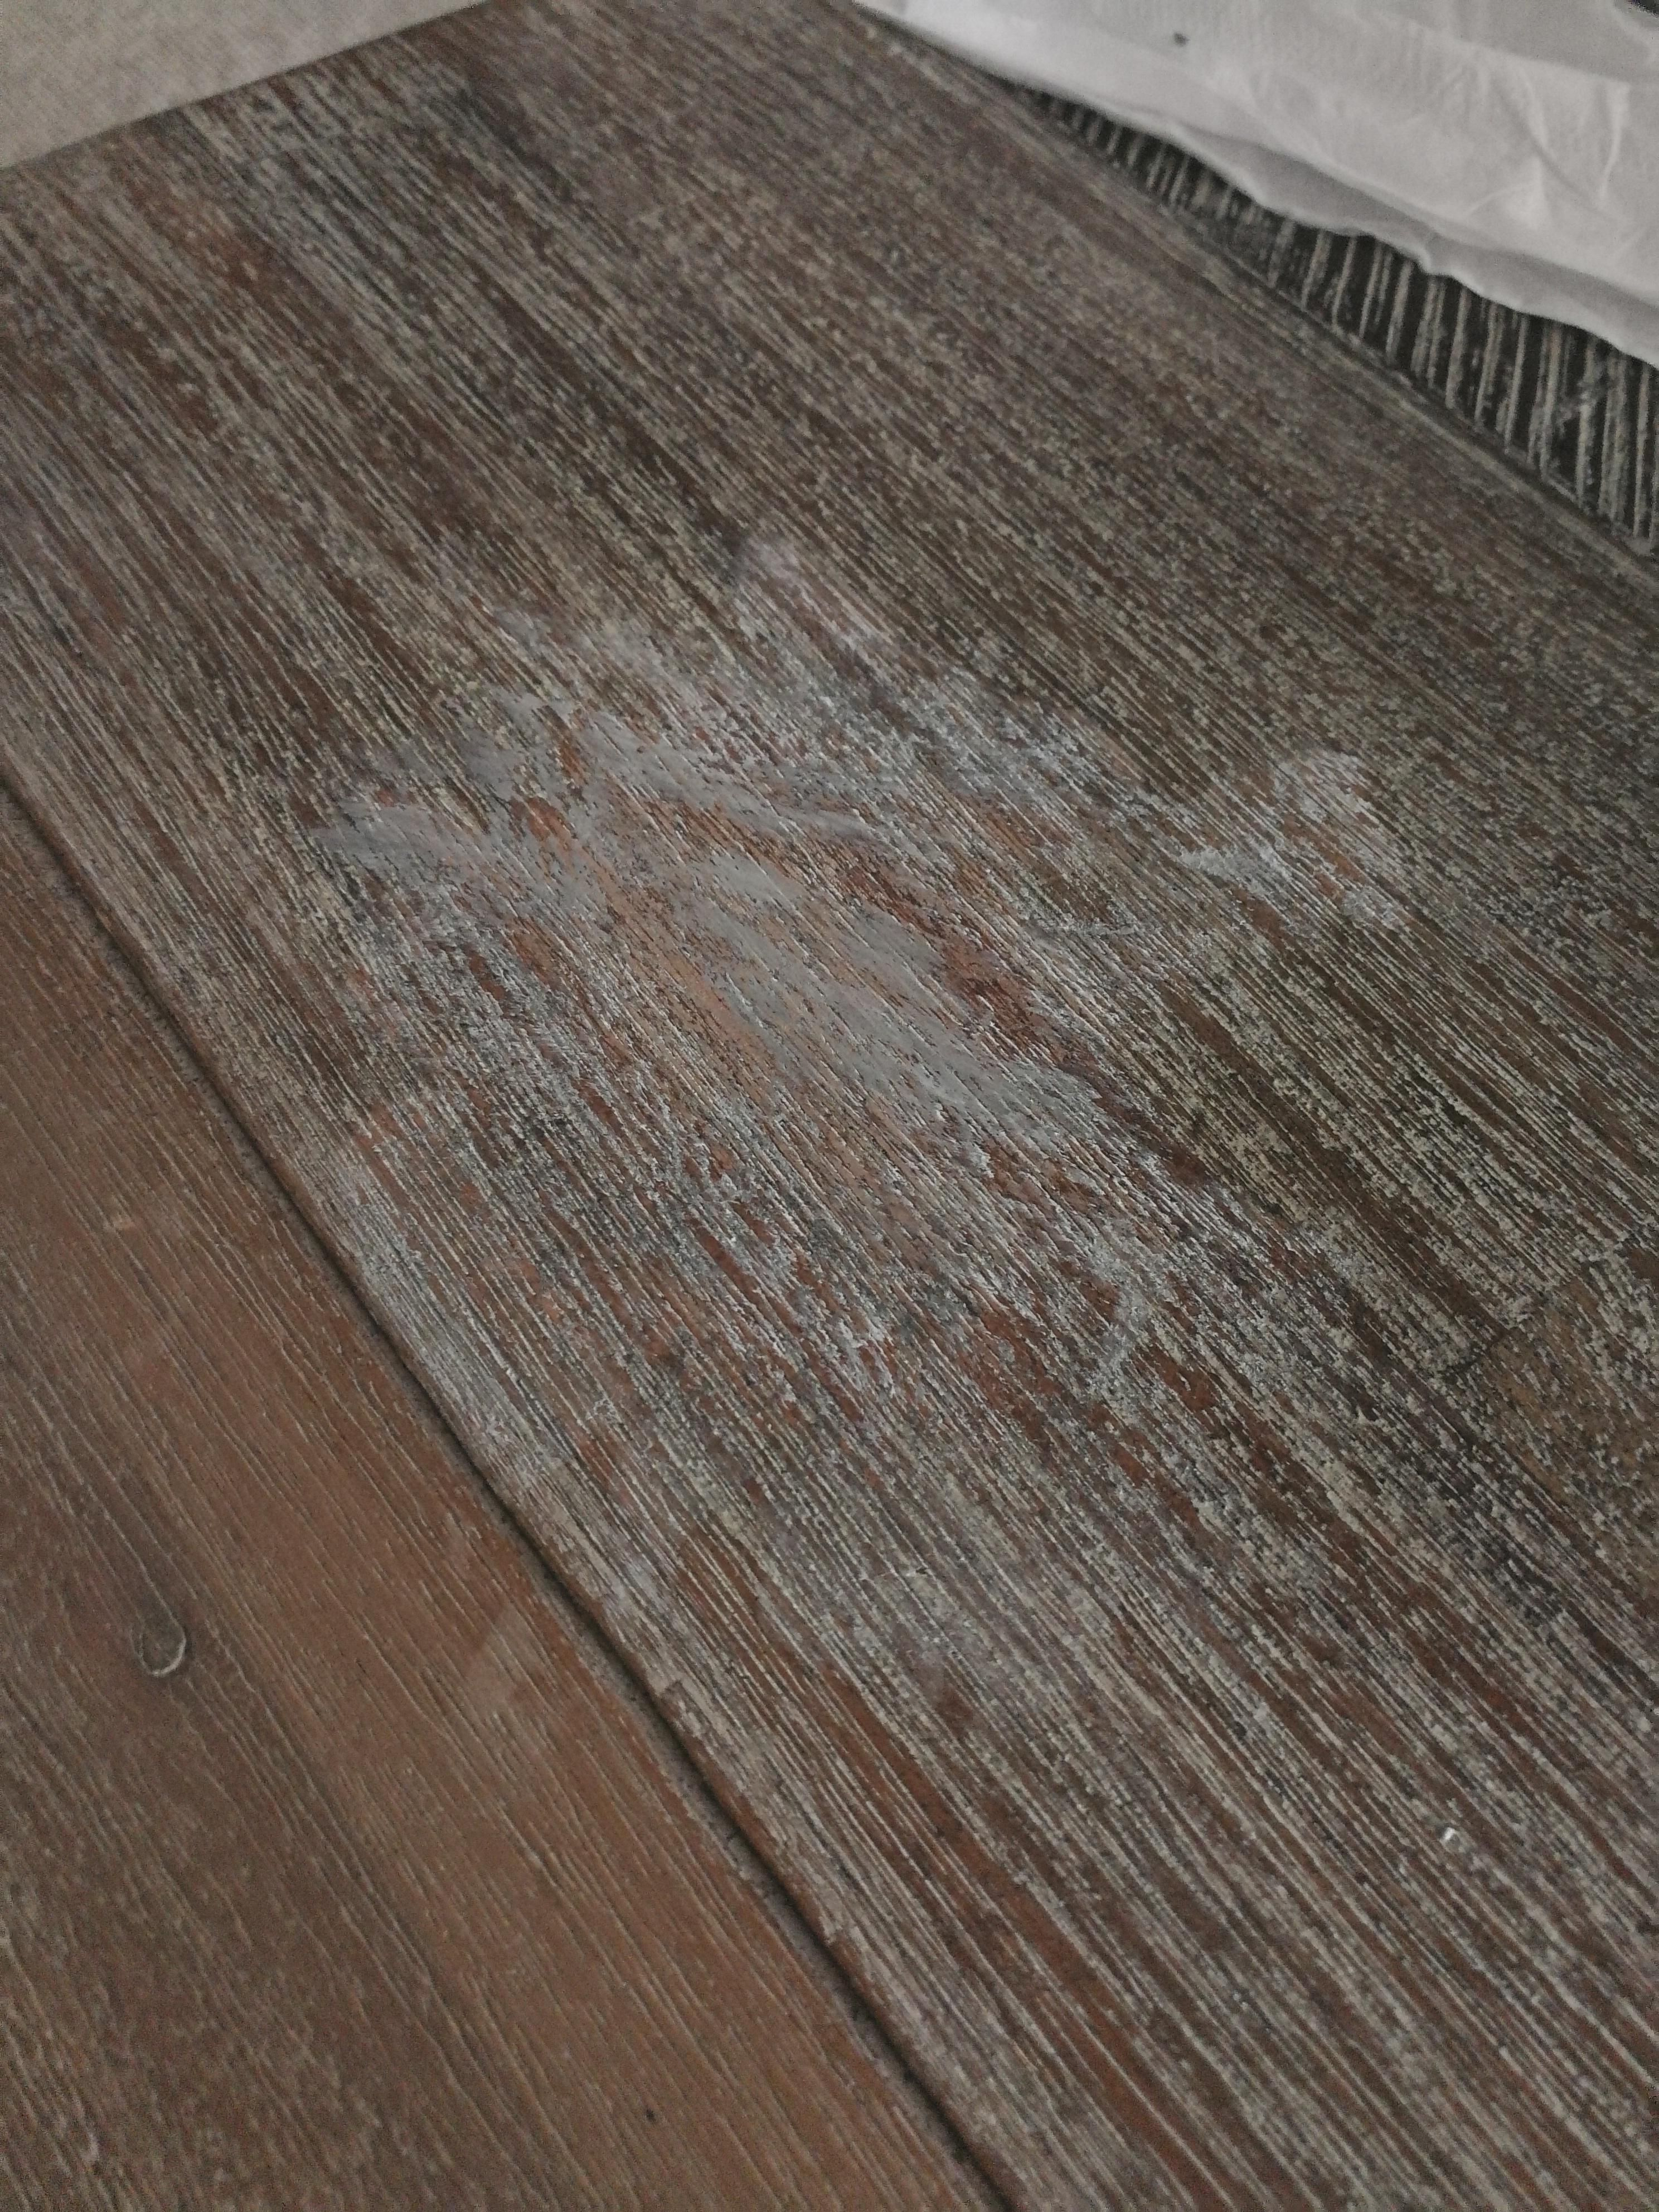 Best Of Spilled Nail Polish Remover Off Wood Floor And Review In 2020 Wood Floors Flooring Nail Polish Remover